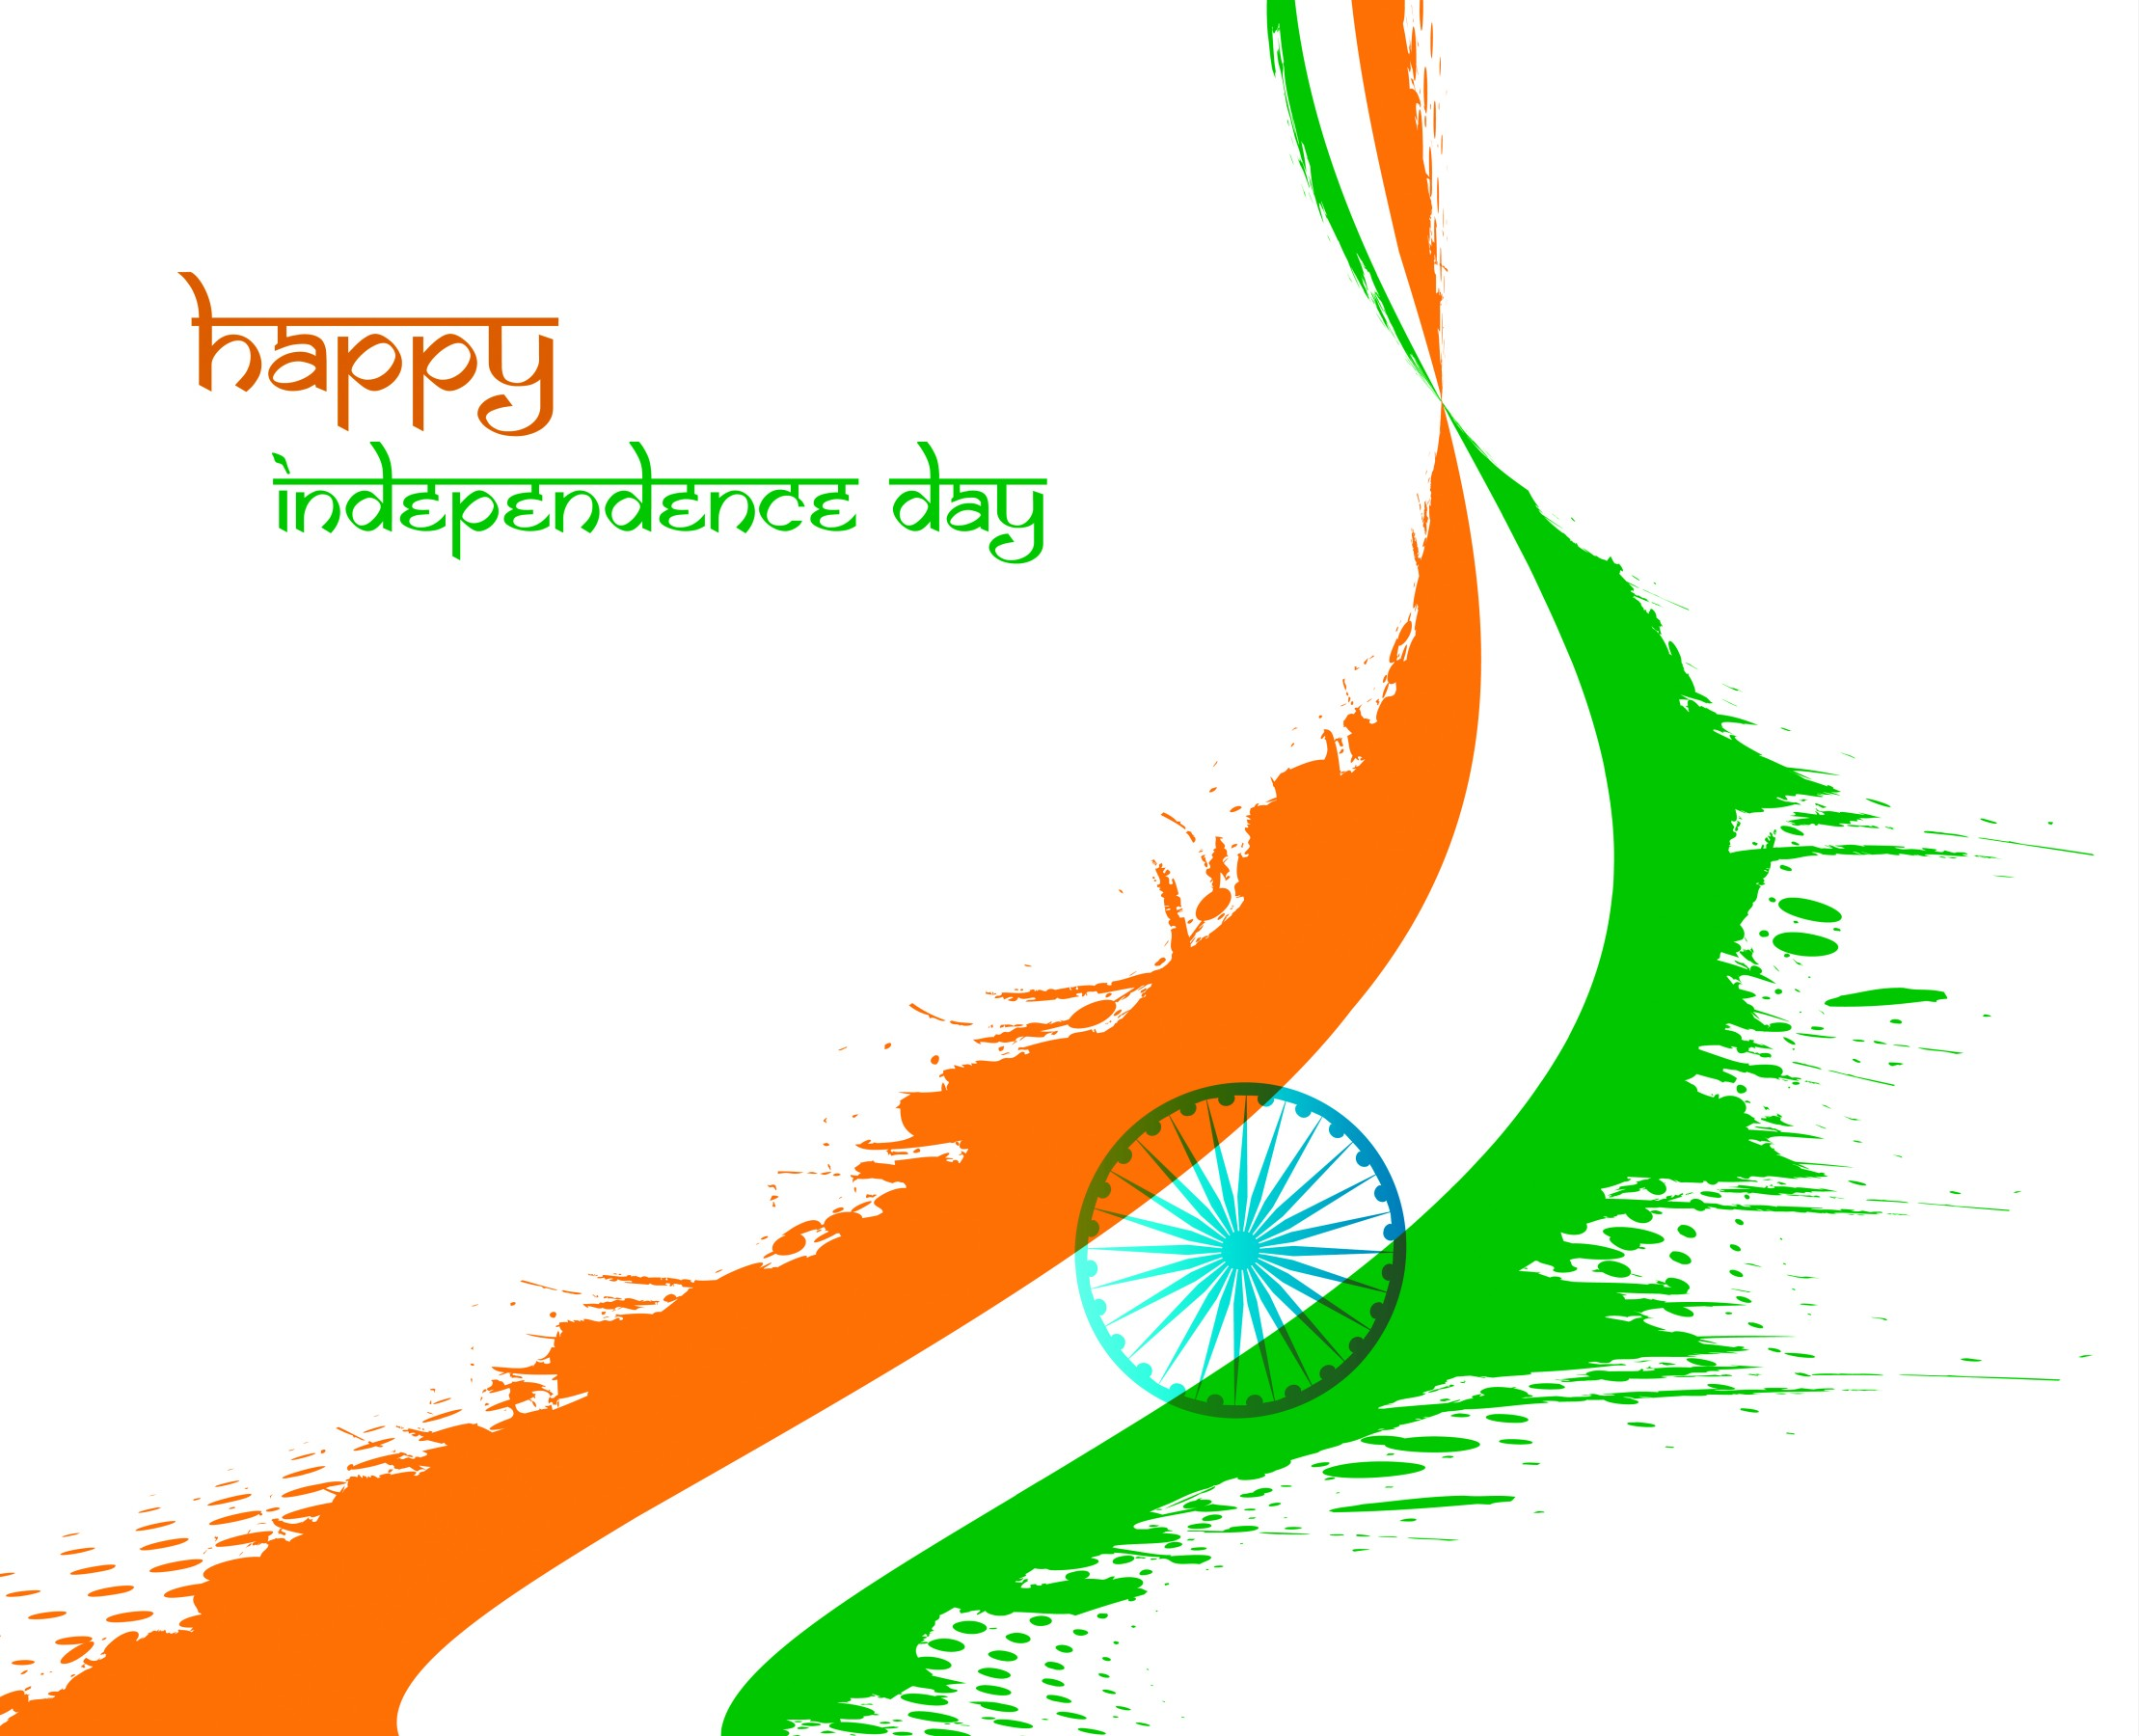 independence day essay words essay on independence day  words essay on independence day of independence day